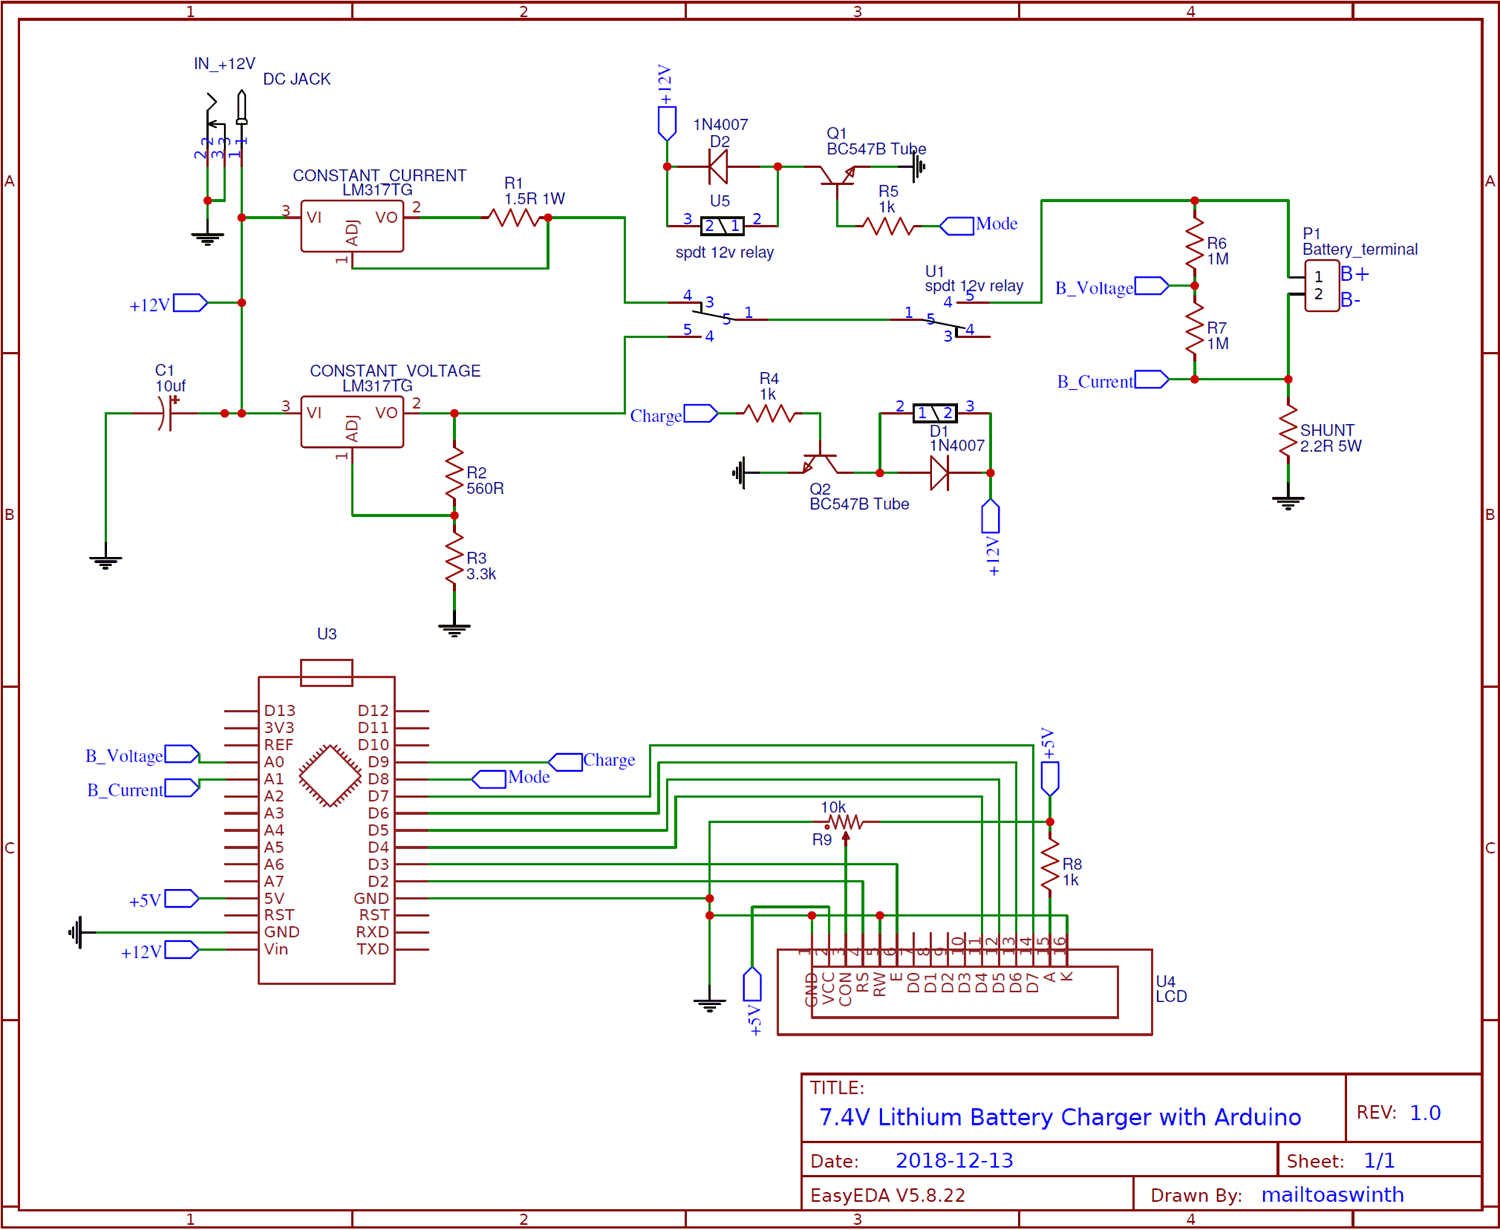 Circuit Diagram for 7.4V Two Step Lithium Battery Charger Circuit